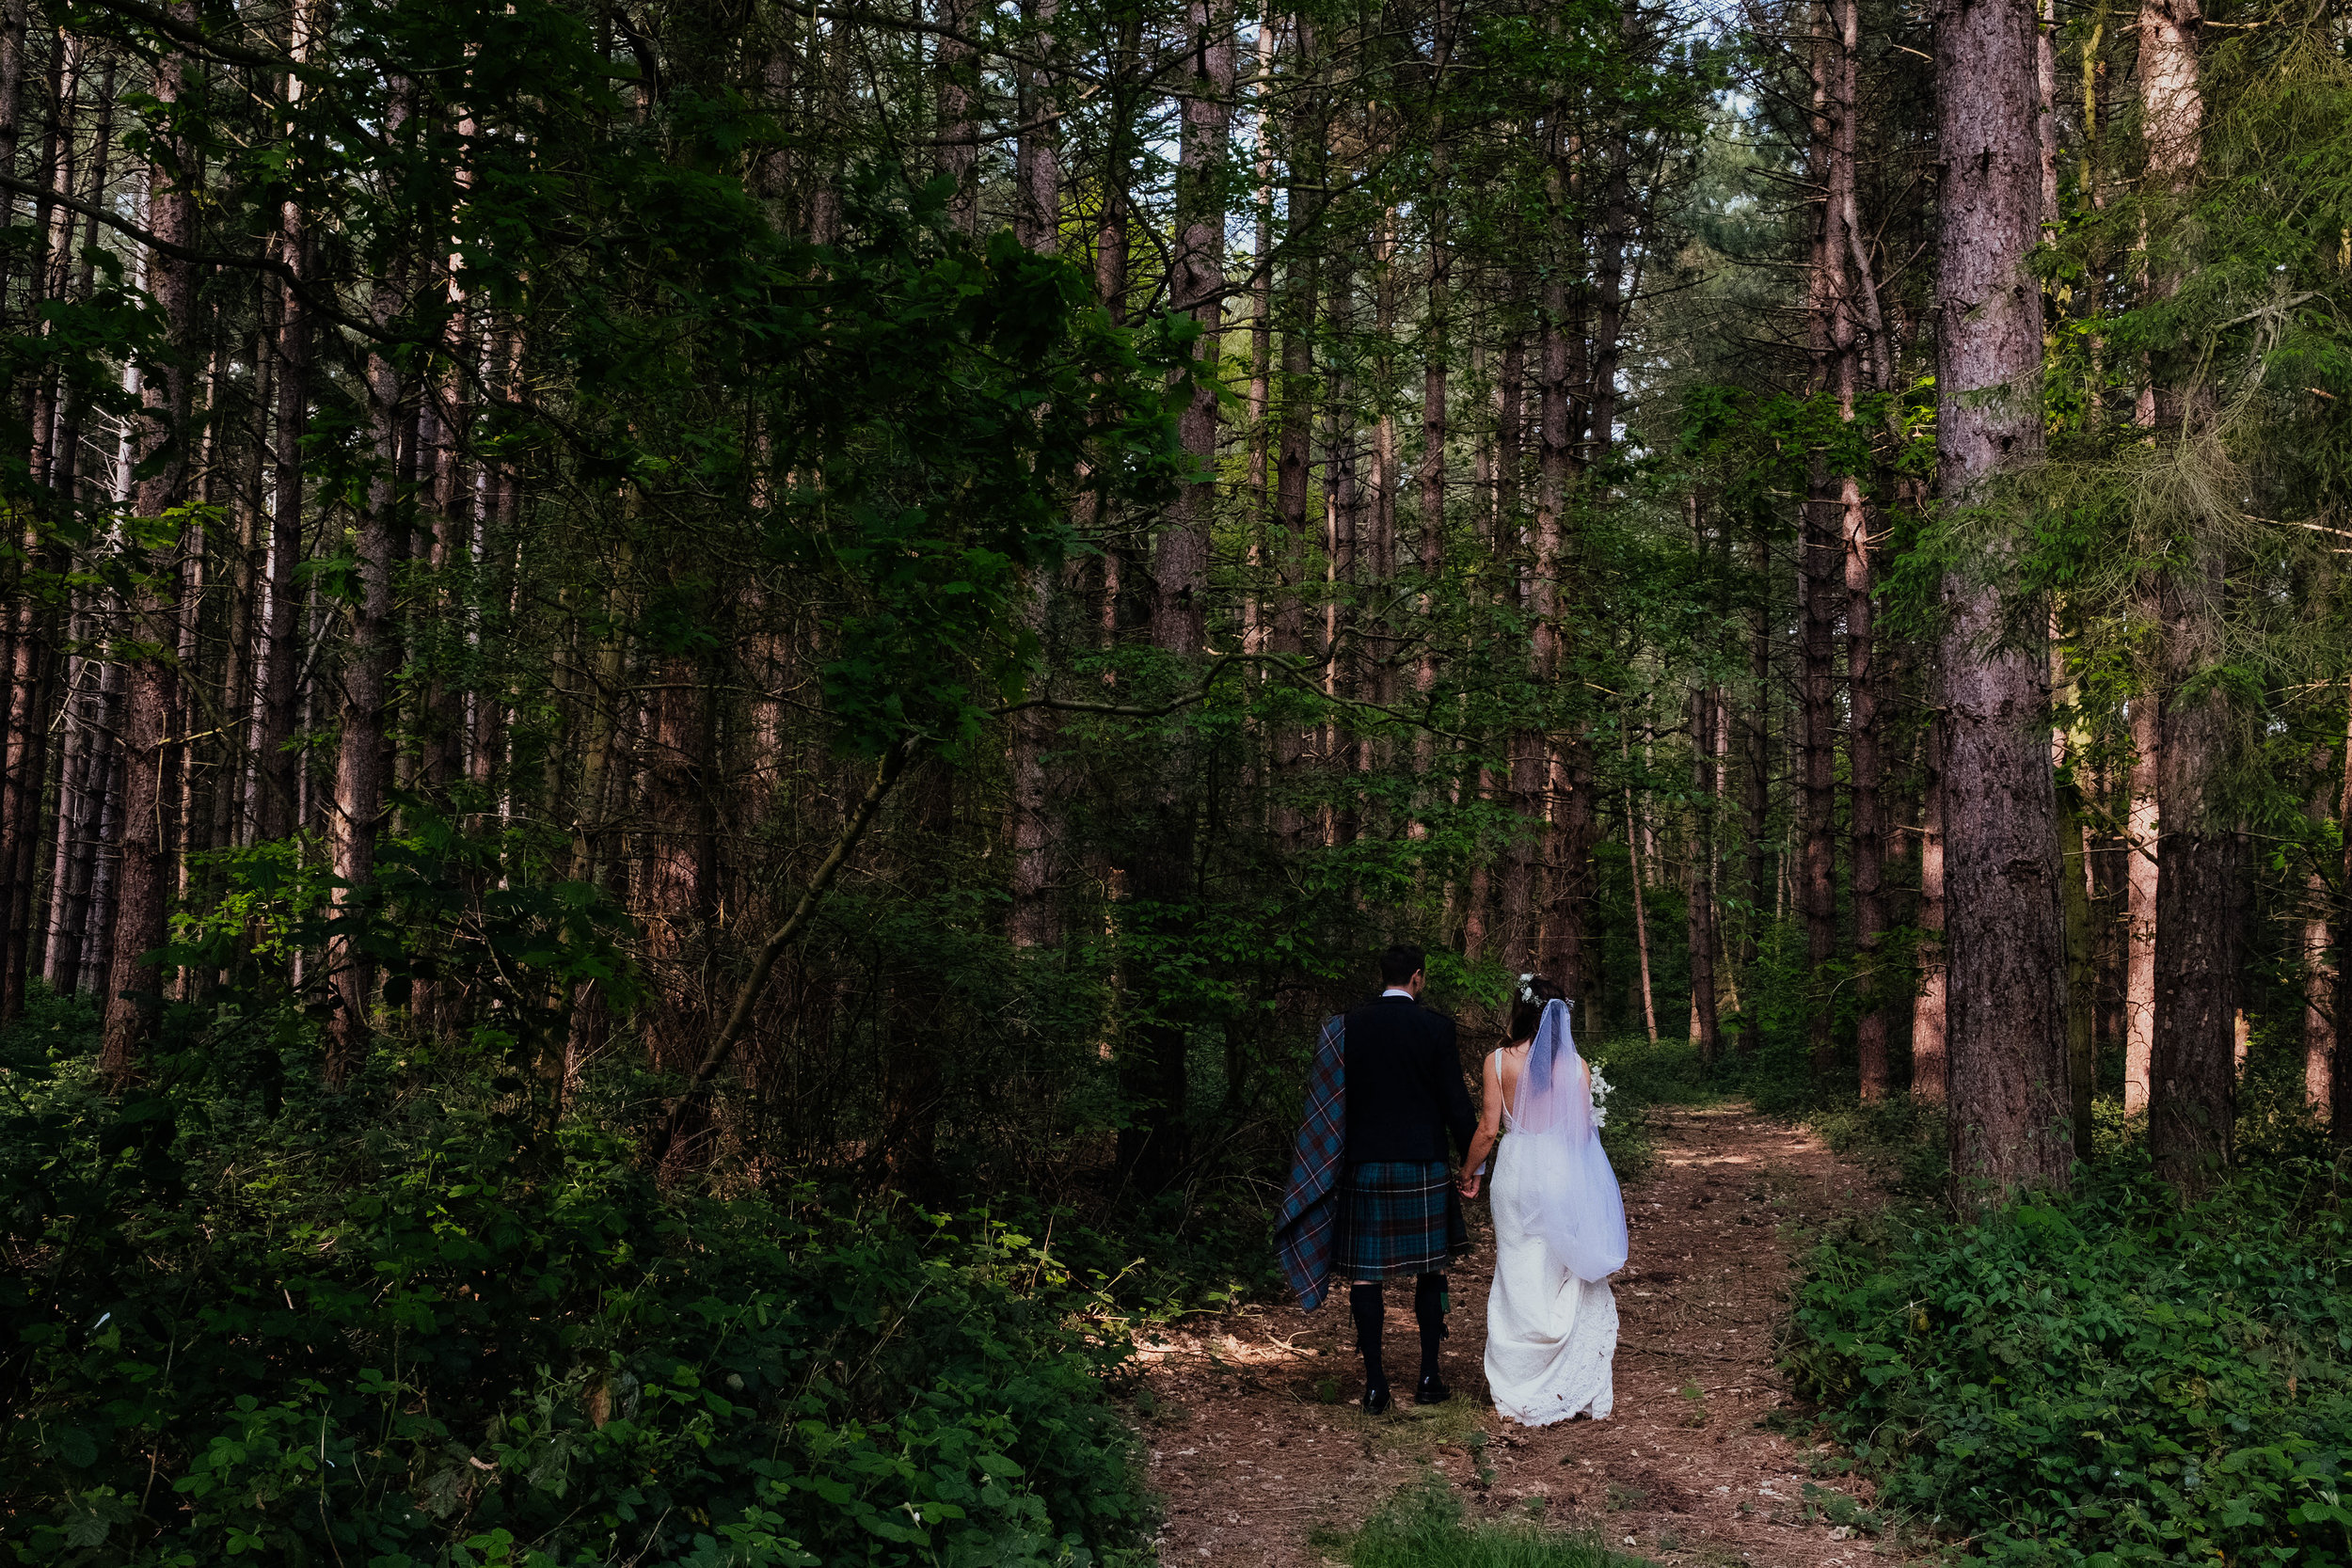 Bride and groom walk through pine forest at Captains Wood Barn wedding